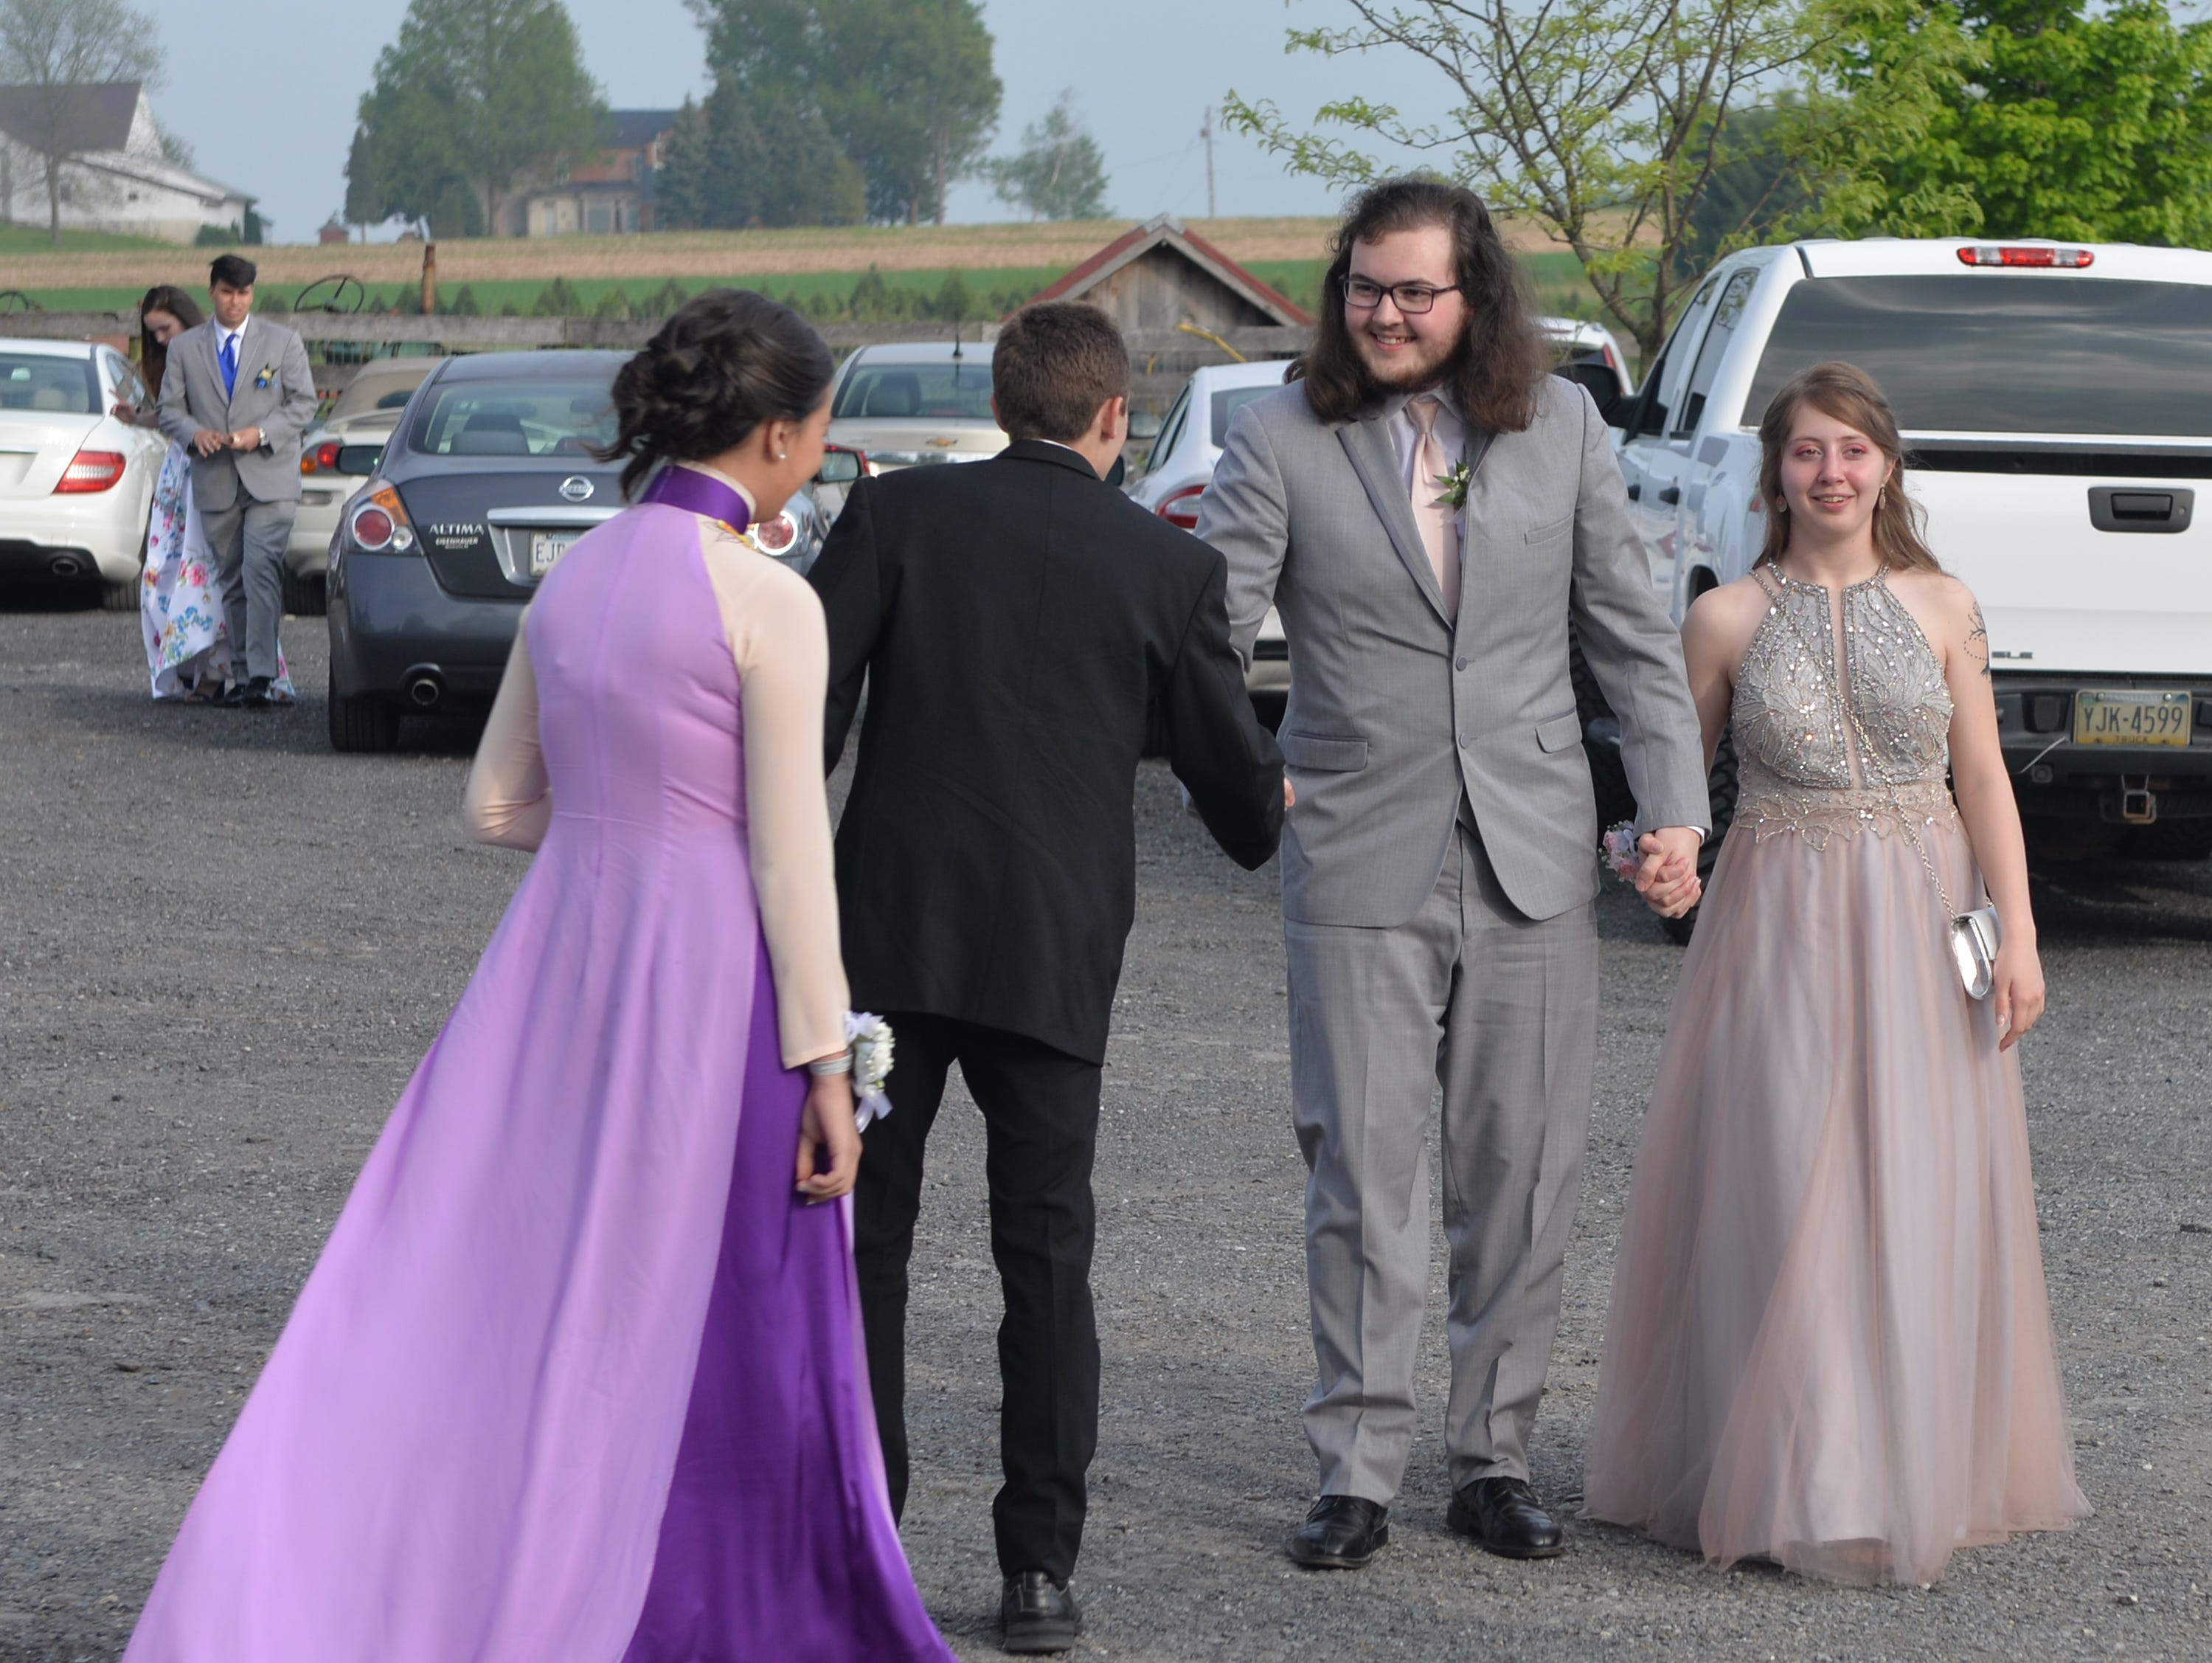 Students and their guests arrive at the Country Loft Barn in Lancaster, Friday, May 3, 2019 for the Cedar Crest prom.